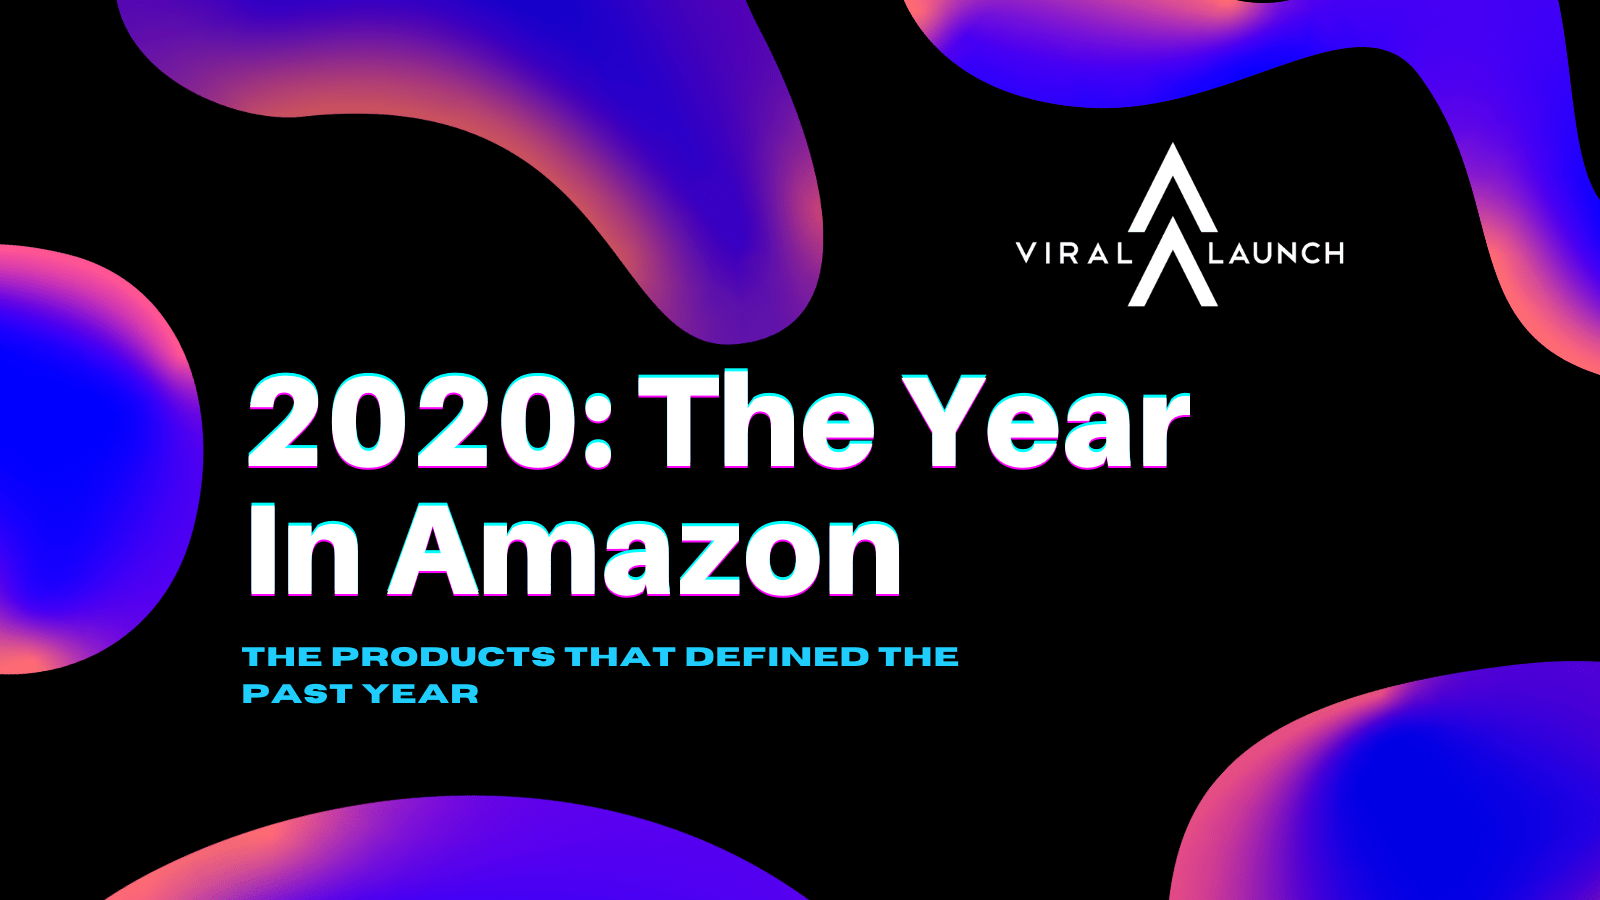 2020: The Year In Amazon